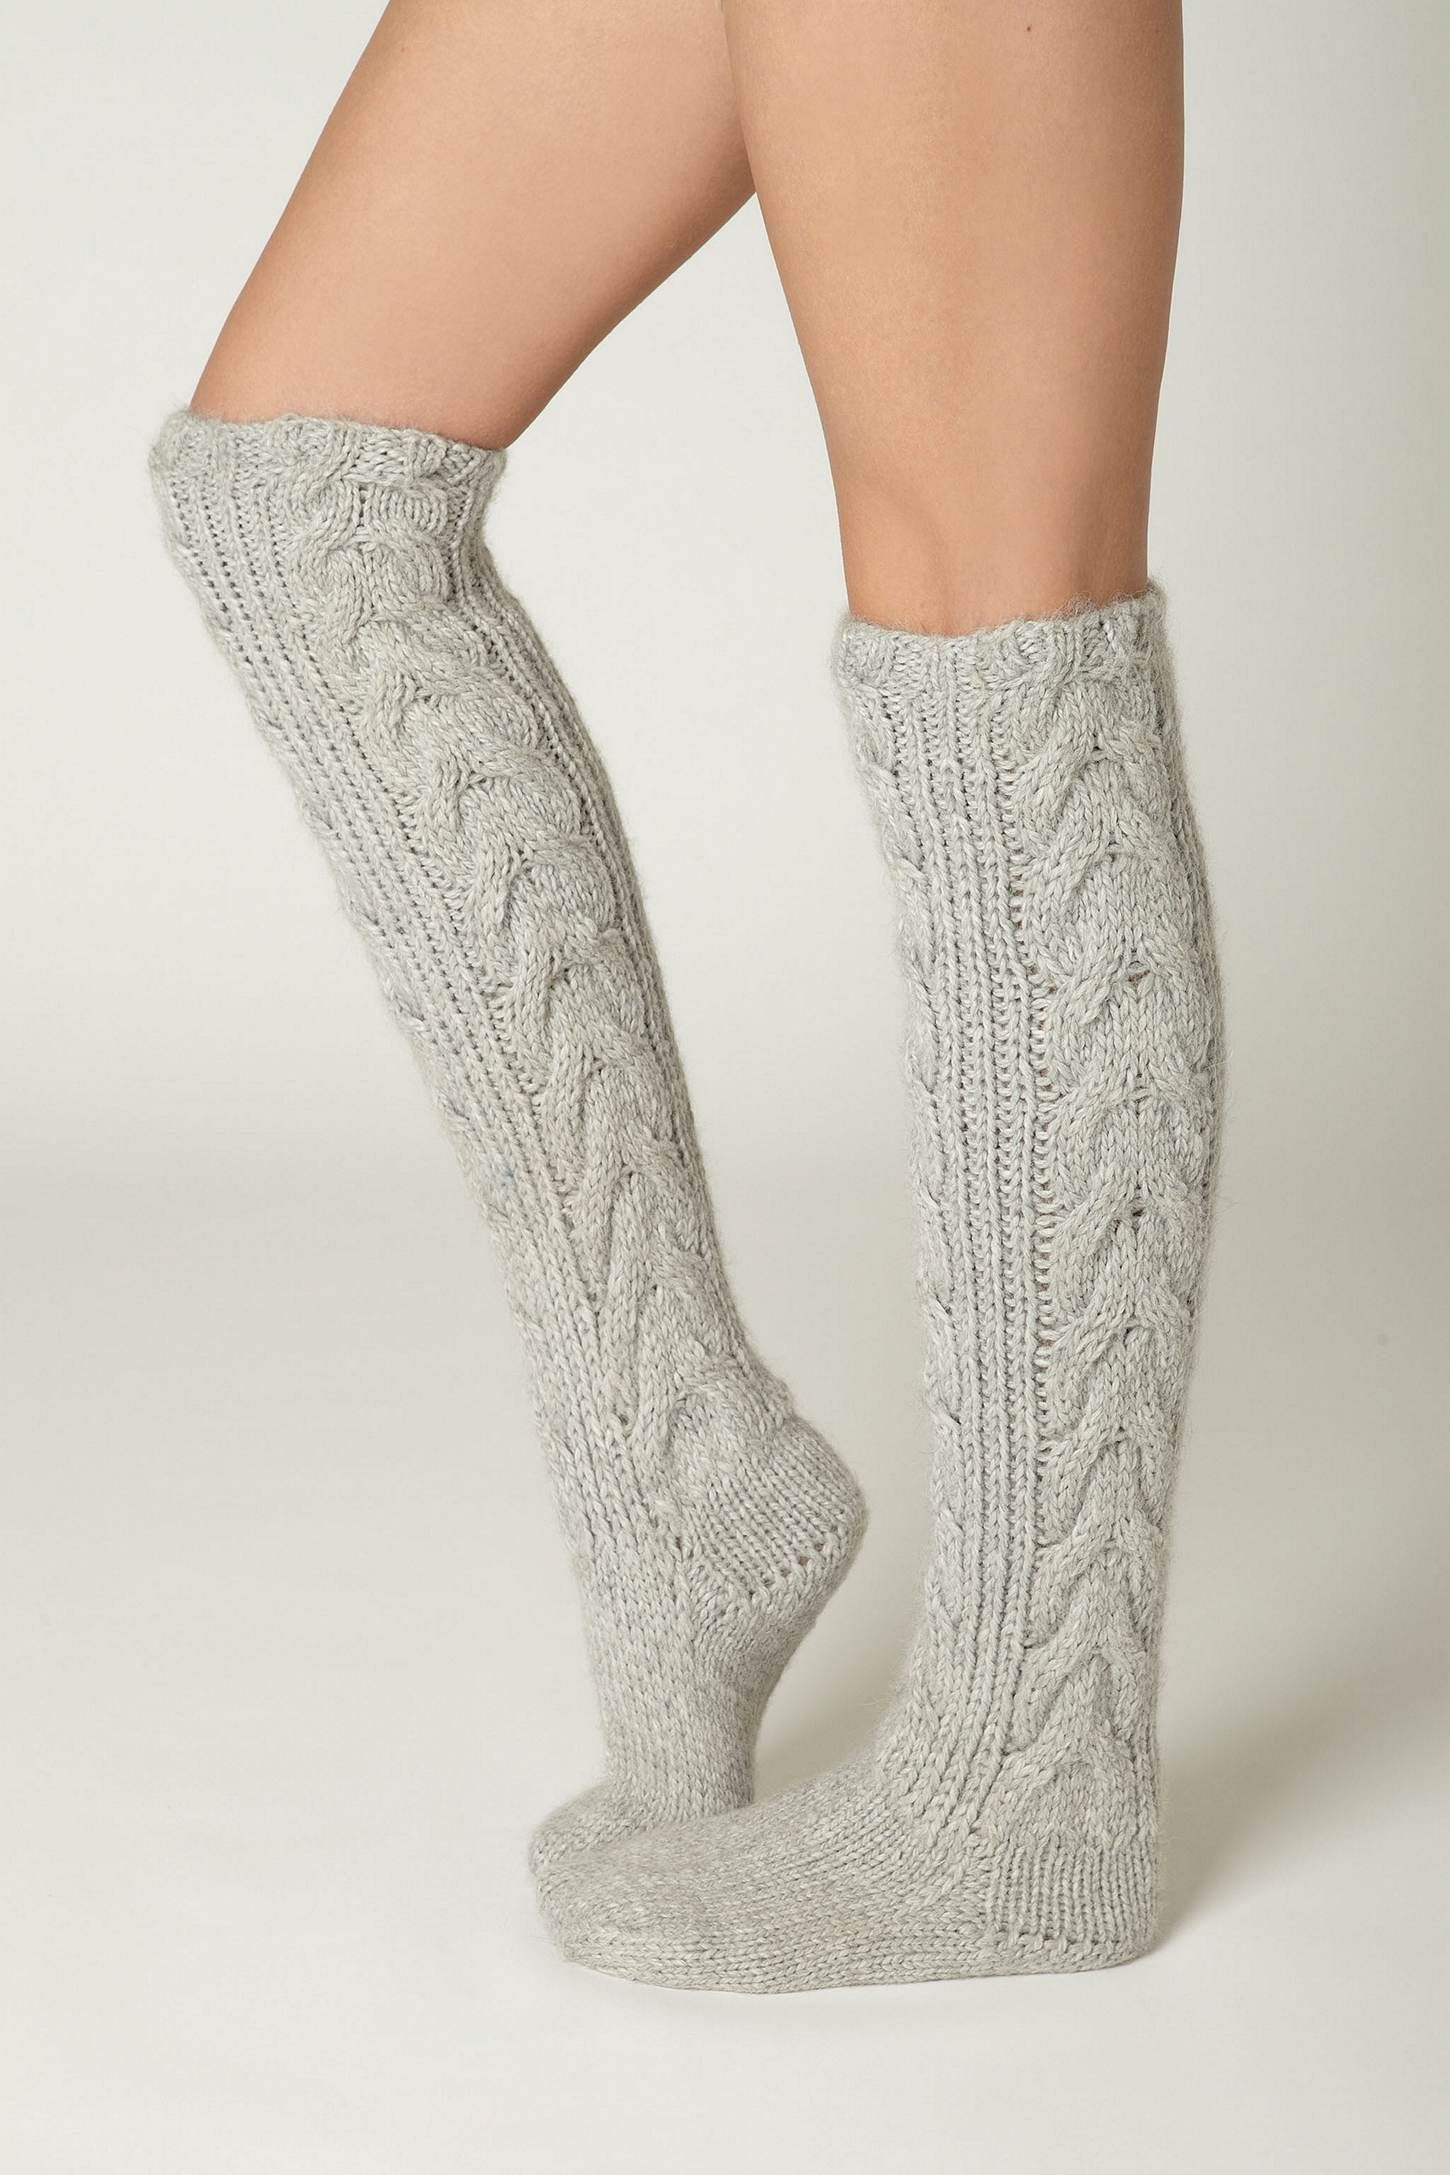 Thermic Bliss Socks From Anthropologie Want These My